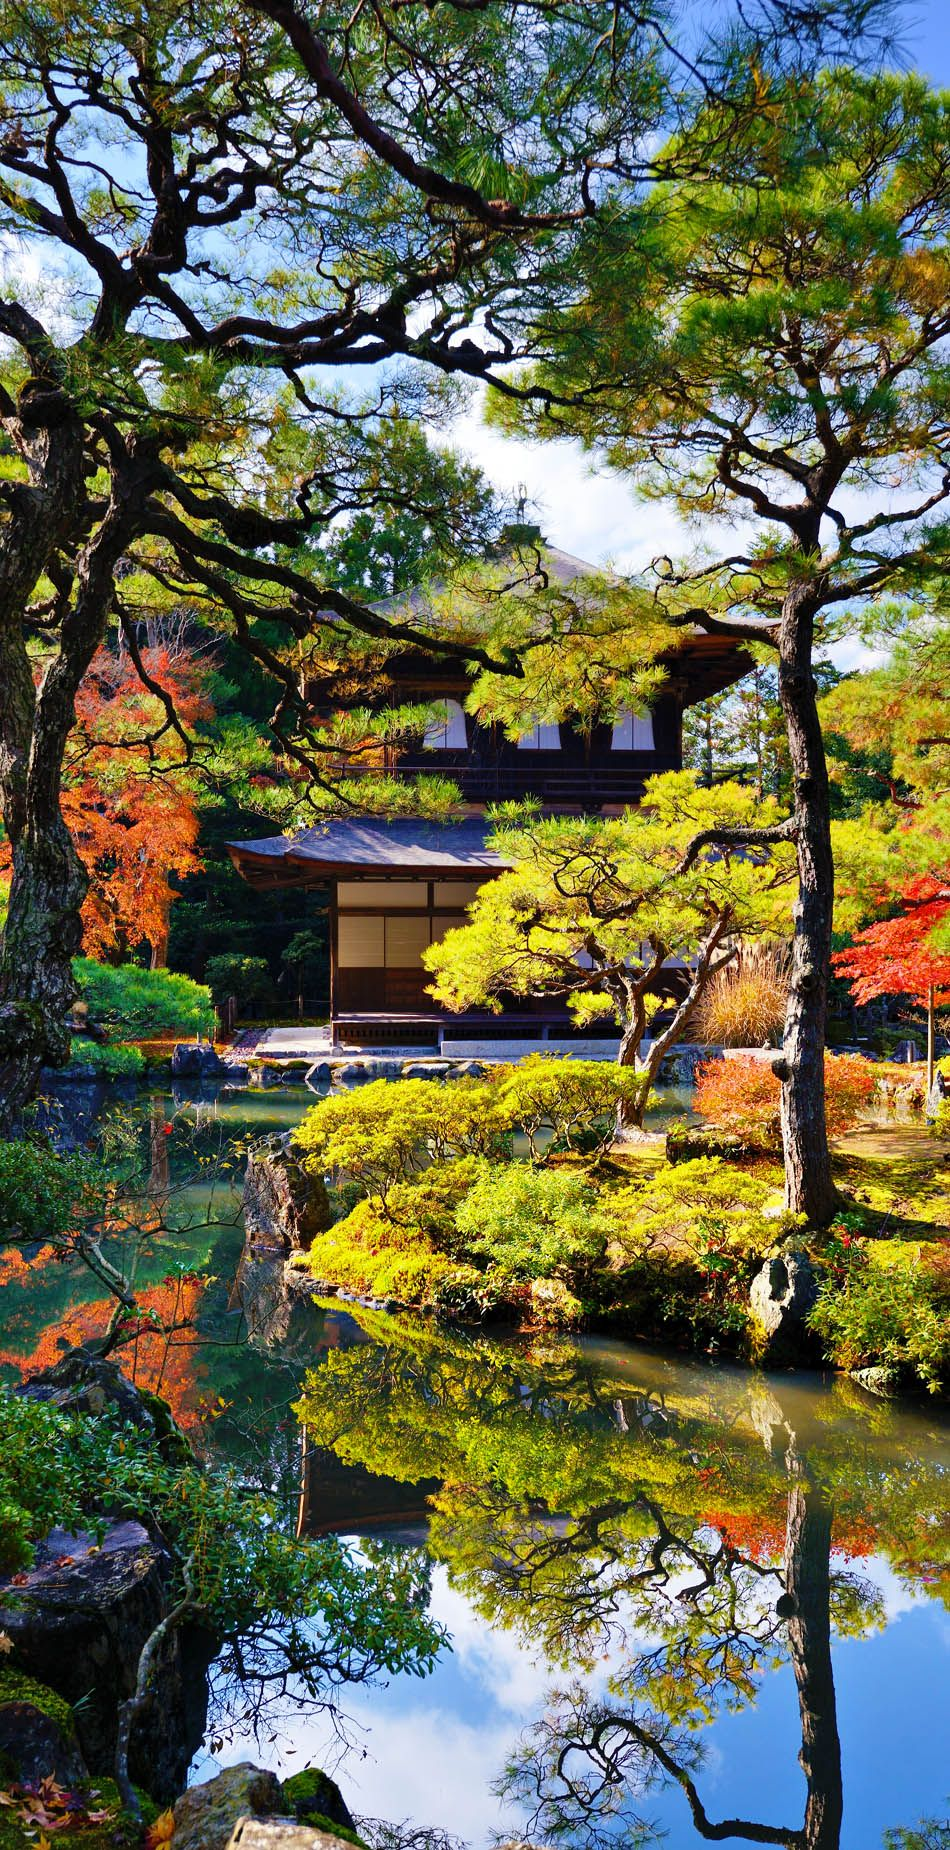 Reasons To Love Japanan An Unforgettable Travel Destination - This amazing image is being called the most beautiful photo of kyoto ever